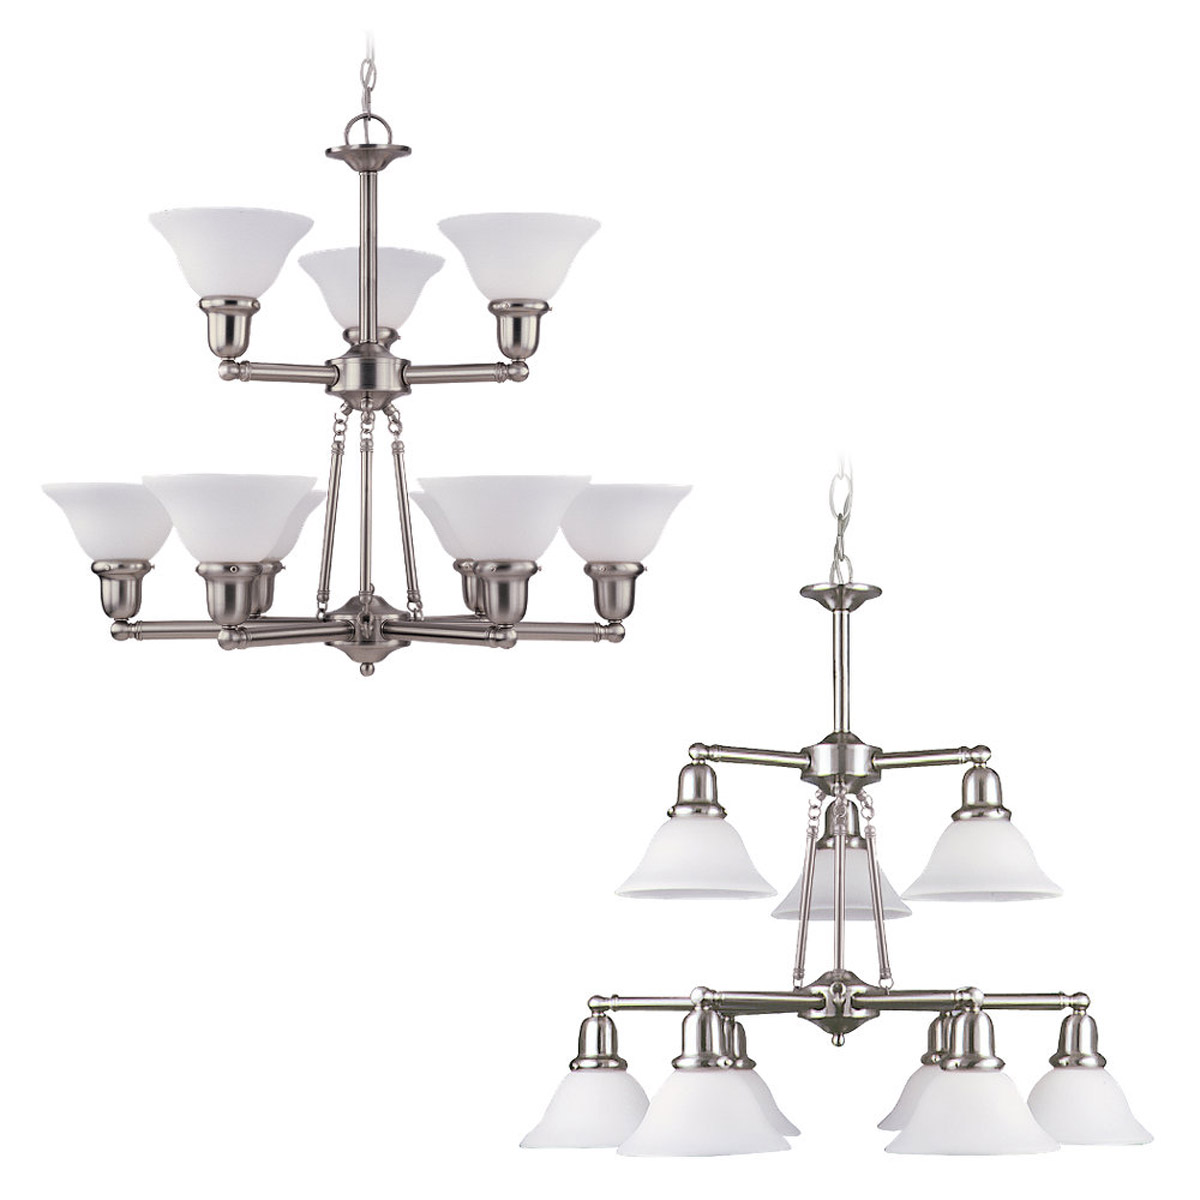 Sea Gull Lighting Sussex 9 Light Chandelier in Brushed Nickel 31062-962